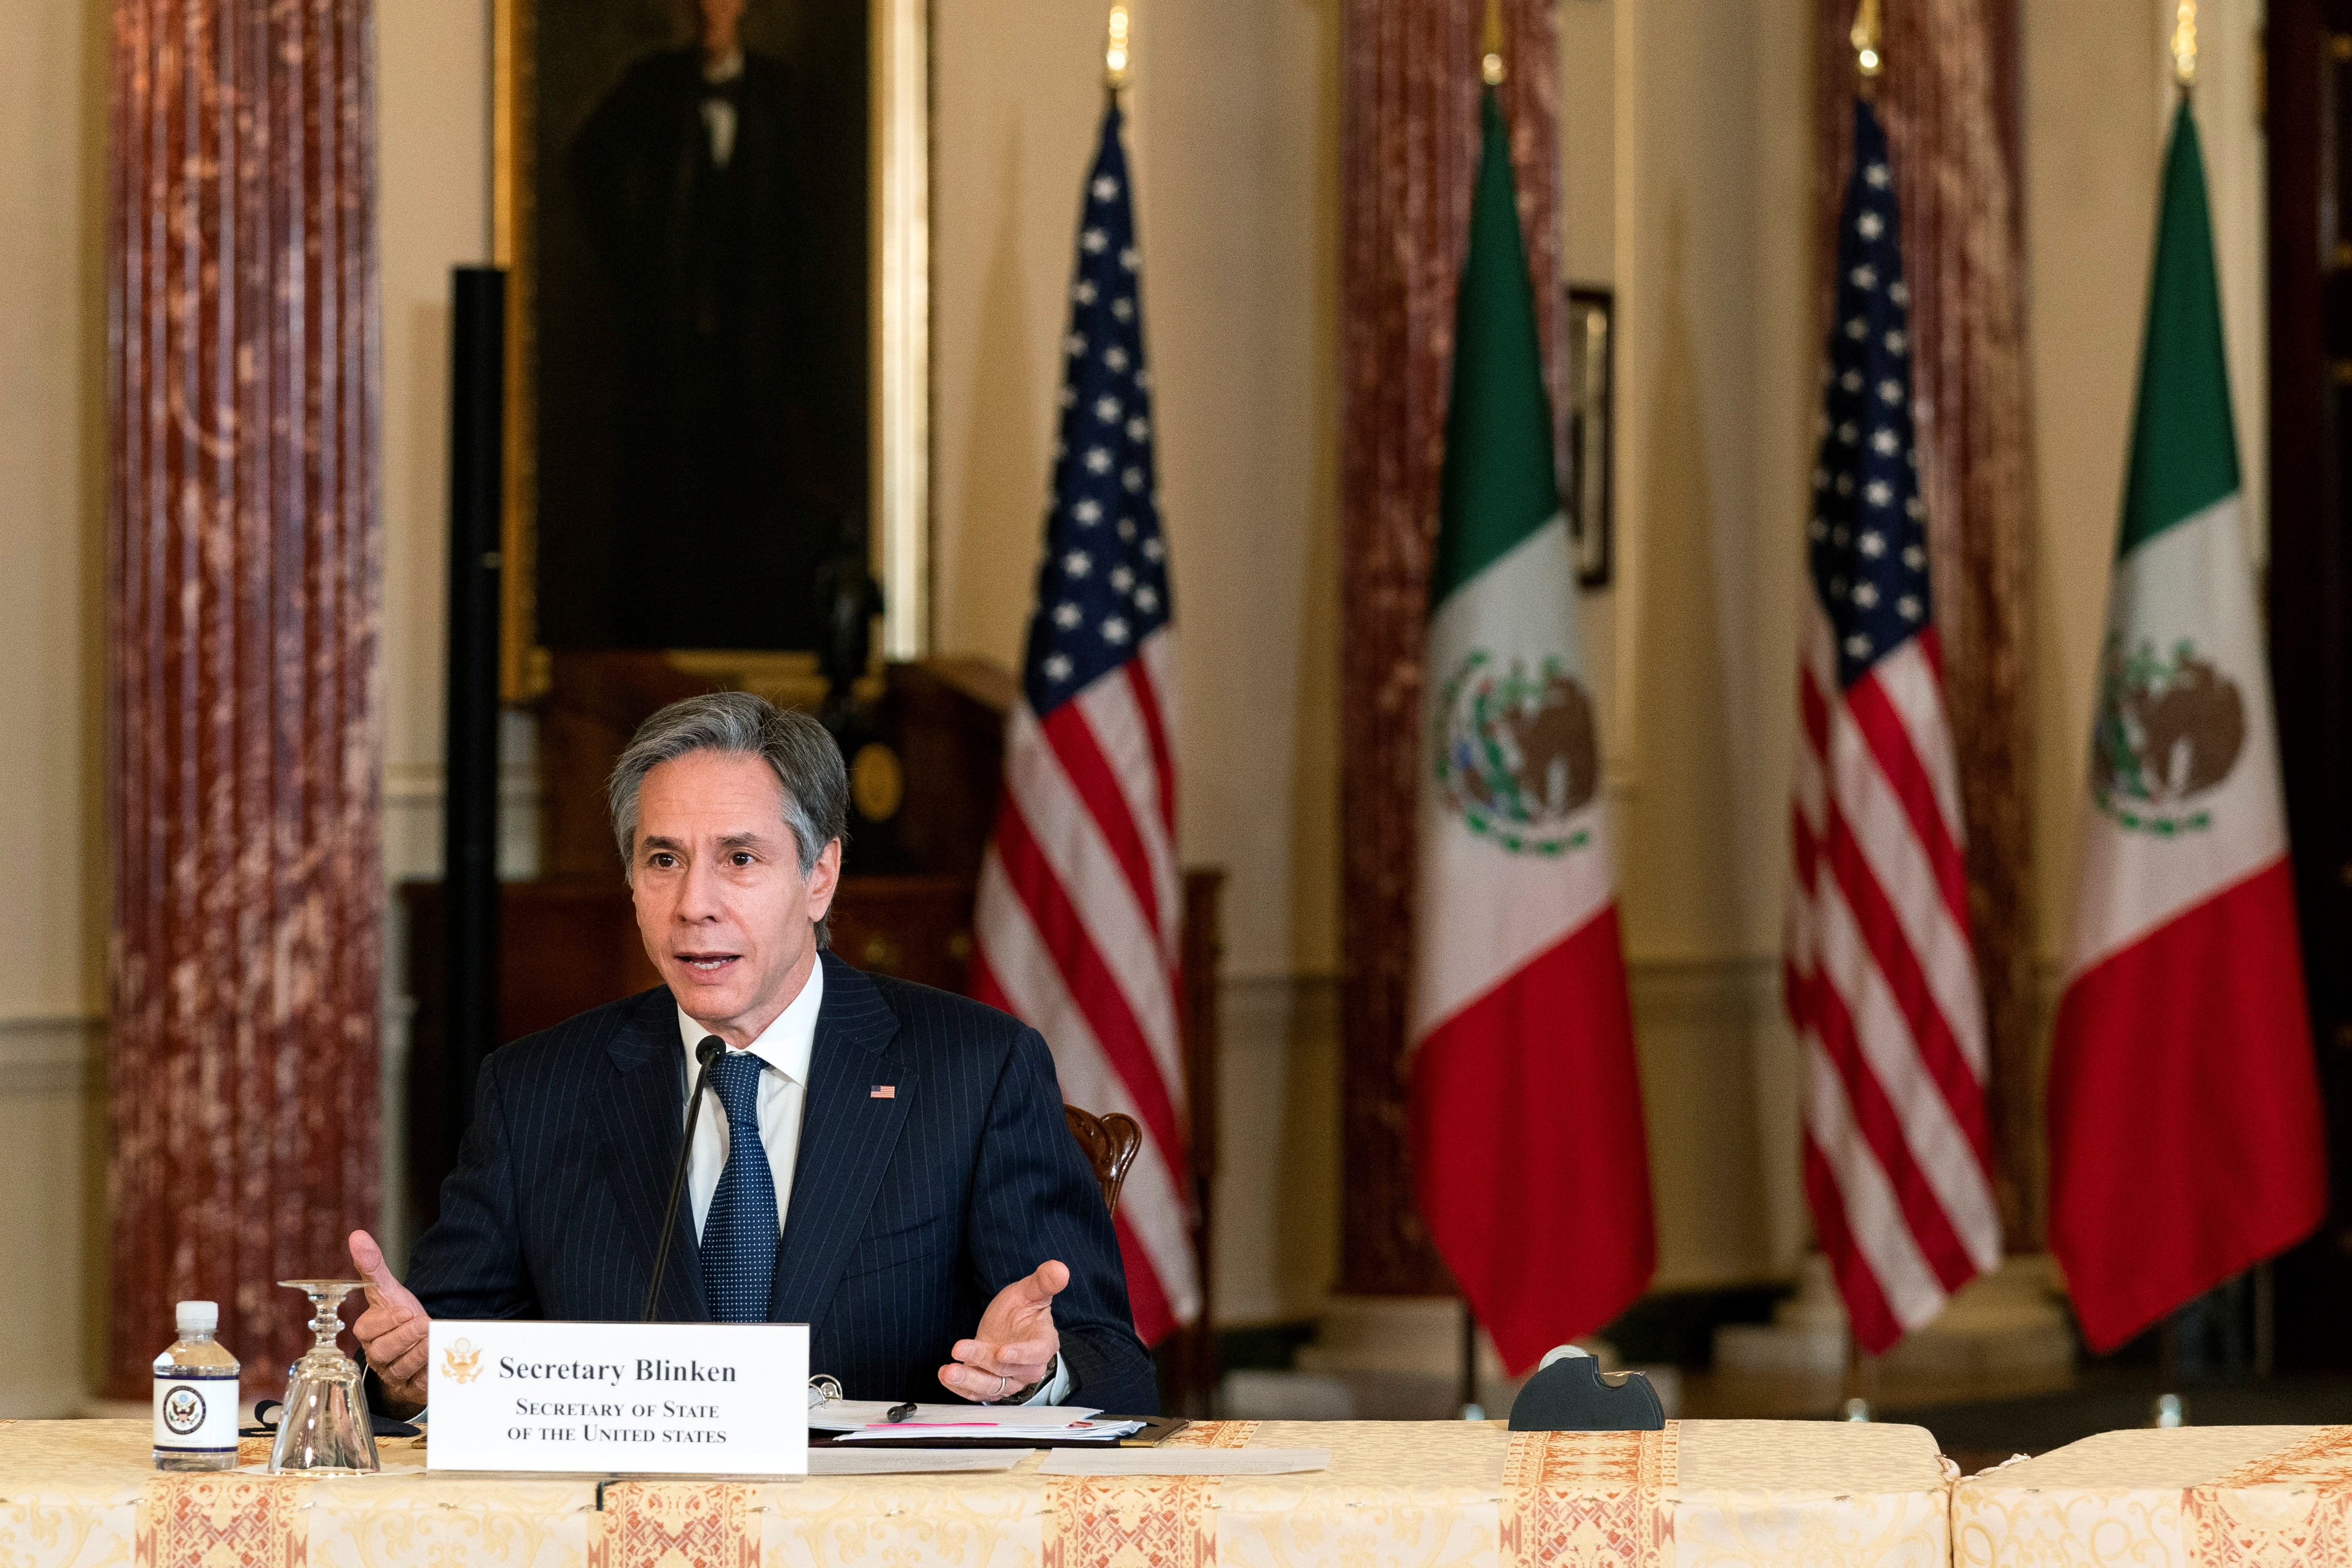 Secretary of State Antony Blinken, speaks in the Benjamin Franklin room at the State Department, during a virtual meeting with Mexican Foreign Secretary Marcelo Ebrard, who is in Mexico City, in Washington, U.S. February 26, 2021. Manuel Balce Ceneta/Pool via REUTERS